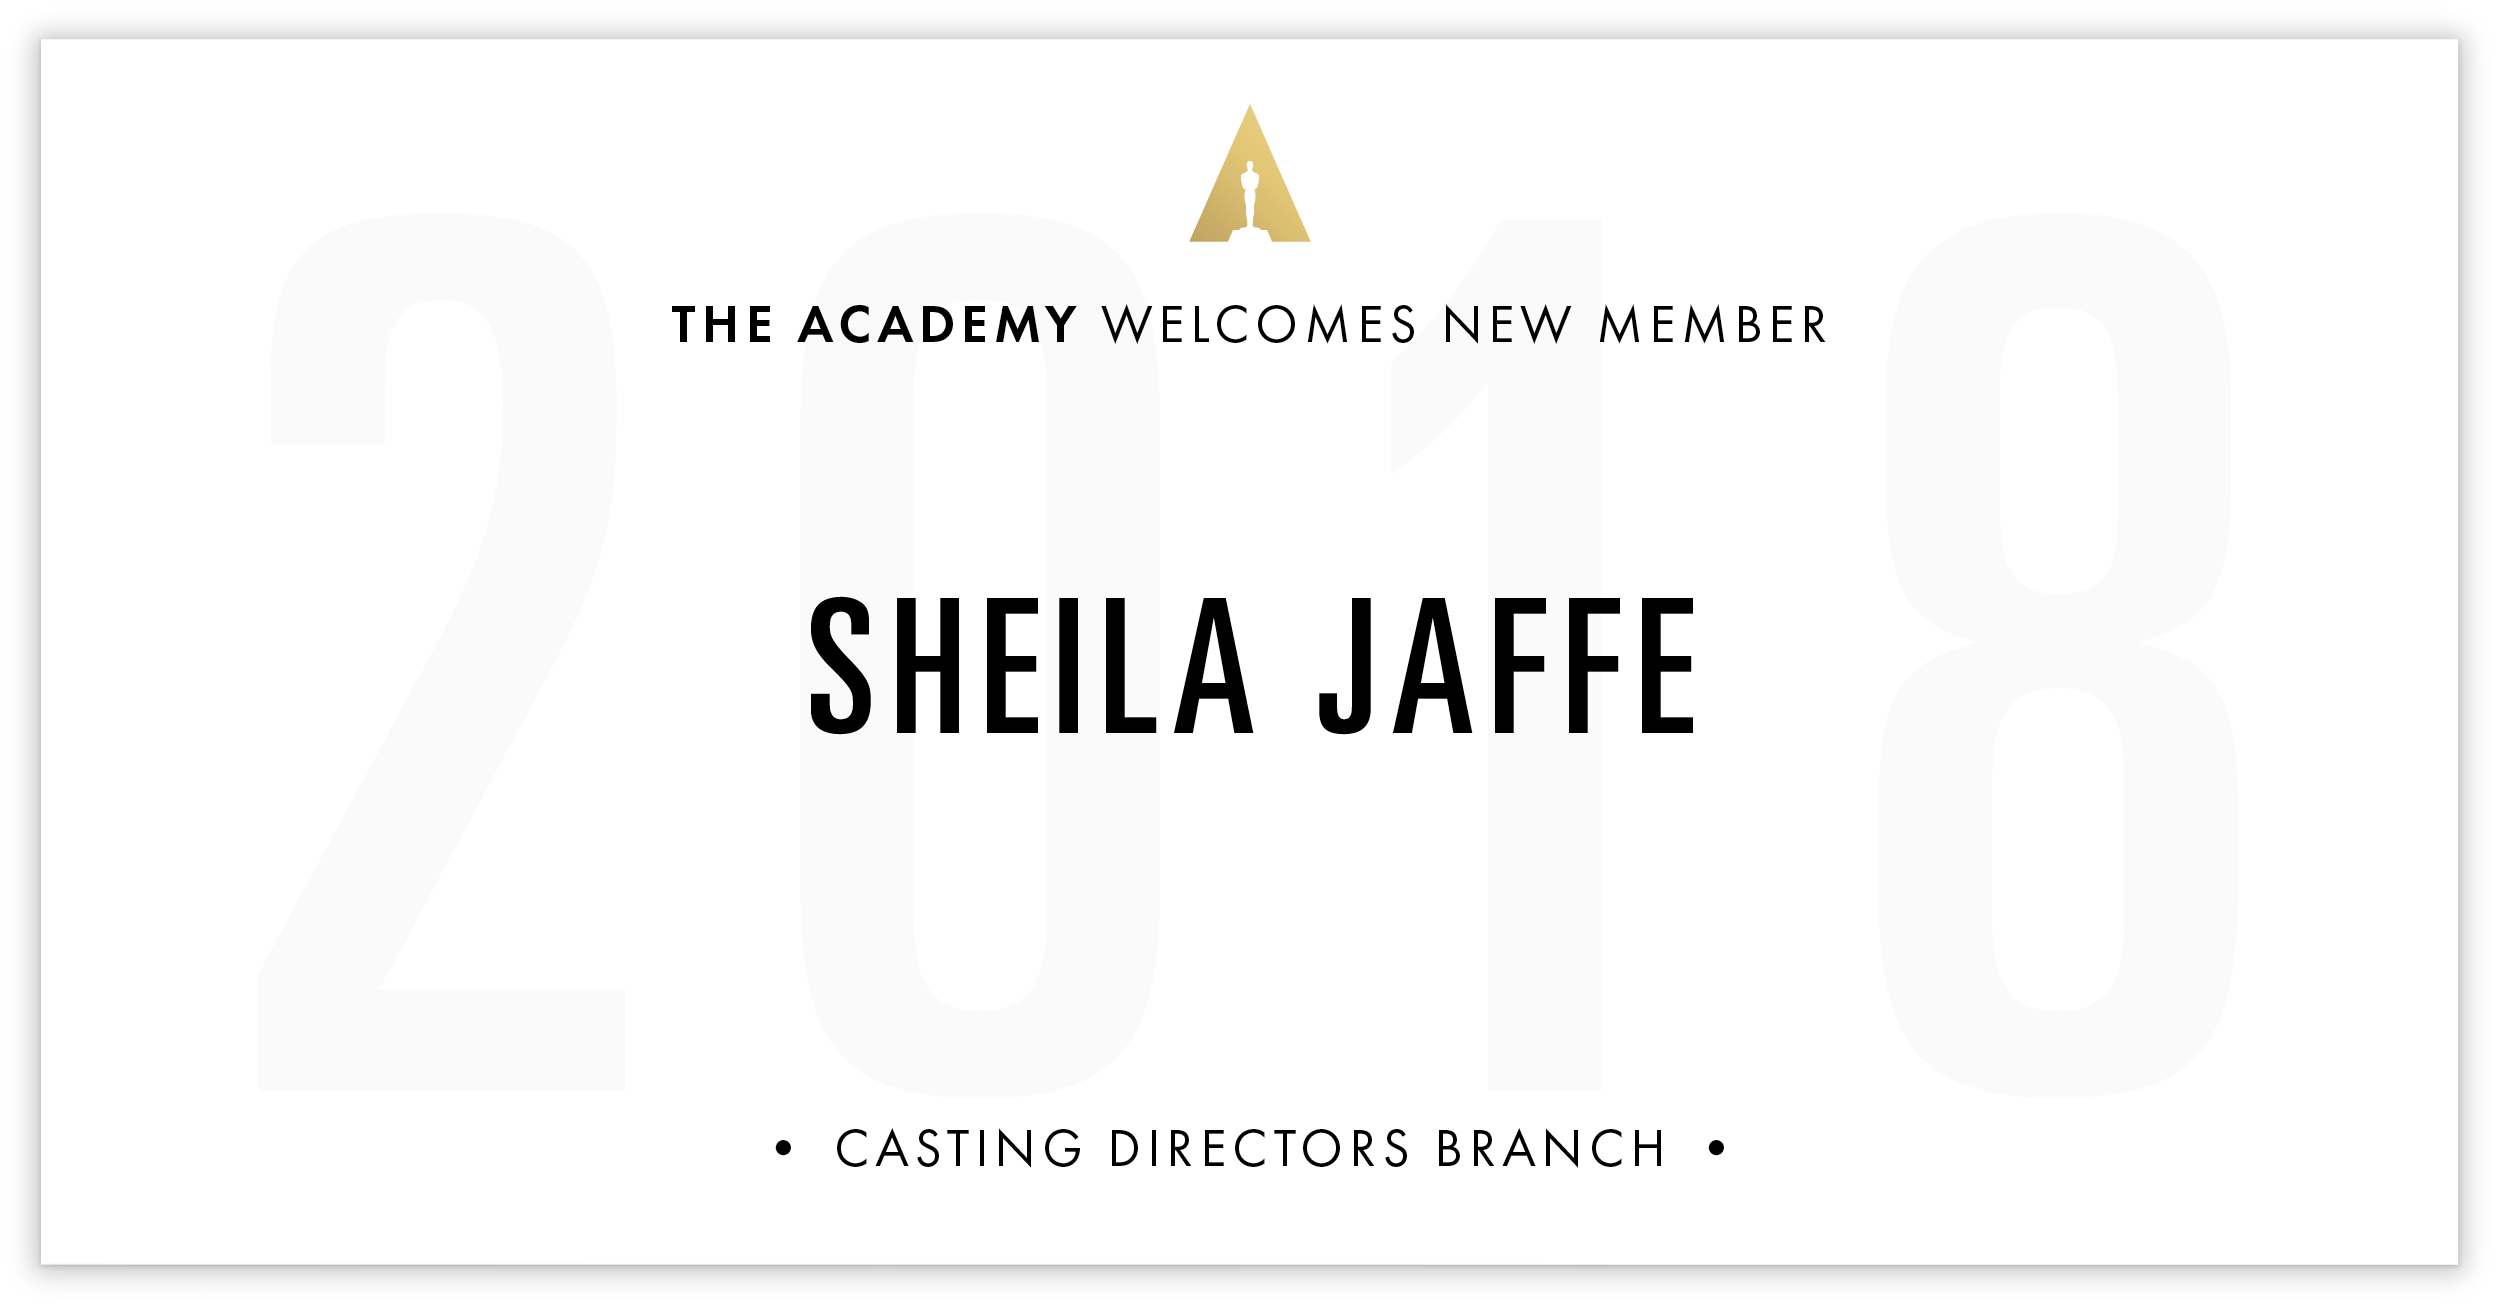 Sheila Jaffe is invited!